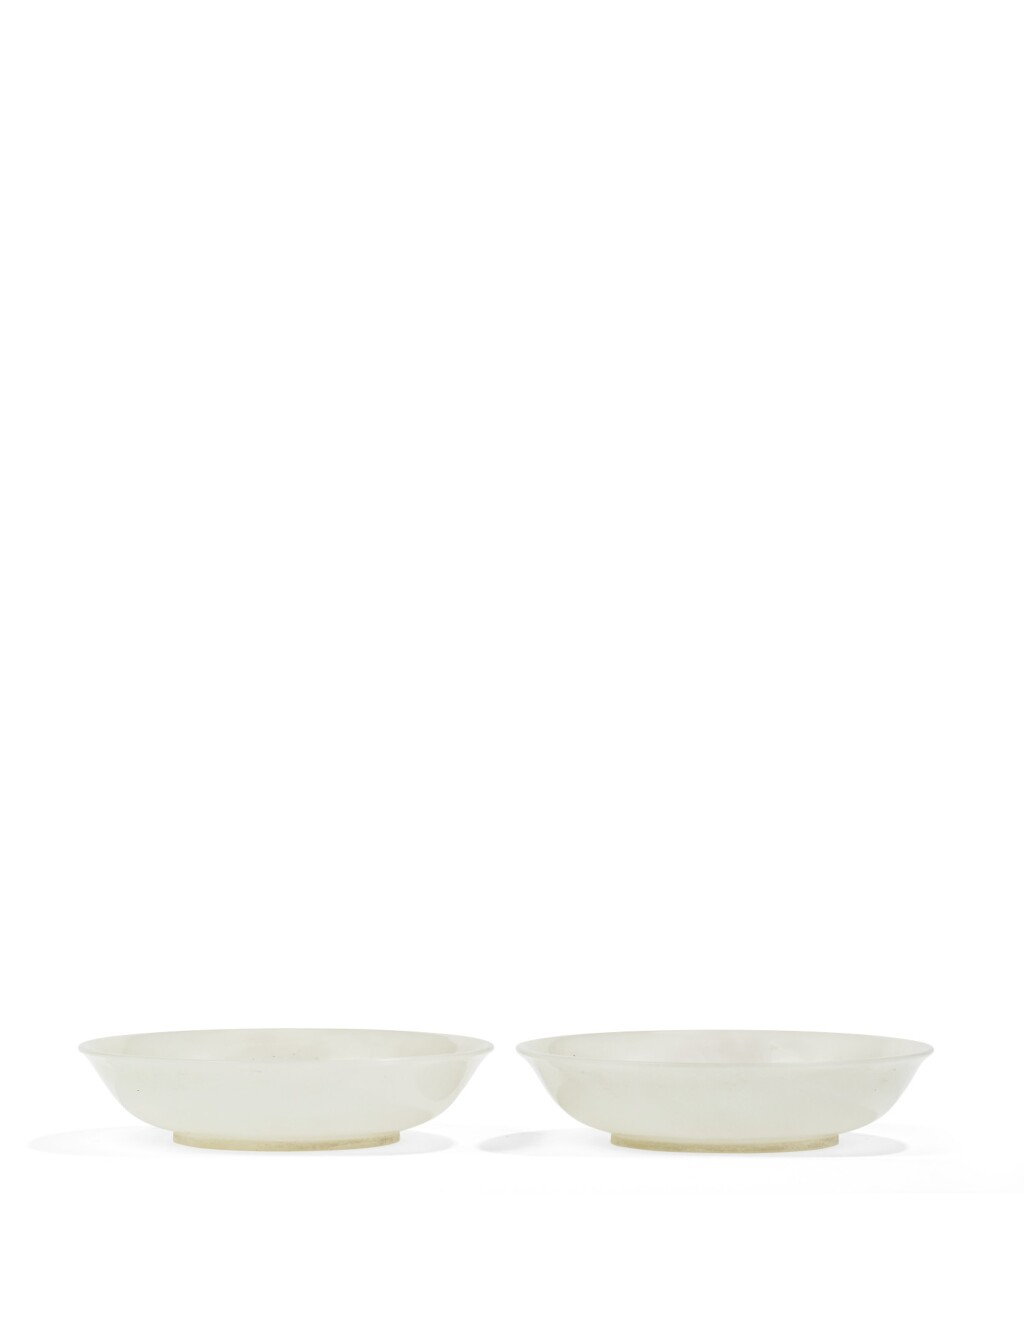 PAIRE DE COUPES EN JADE BLANC DYNASTIE QING, XVIIIE-XIXE SIÈCLE | 清十八至十九世紀 青白玉圓盤一對 | A pair of white jade dishes, Qing Dynasty, 18th/19th century